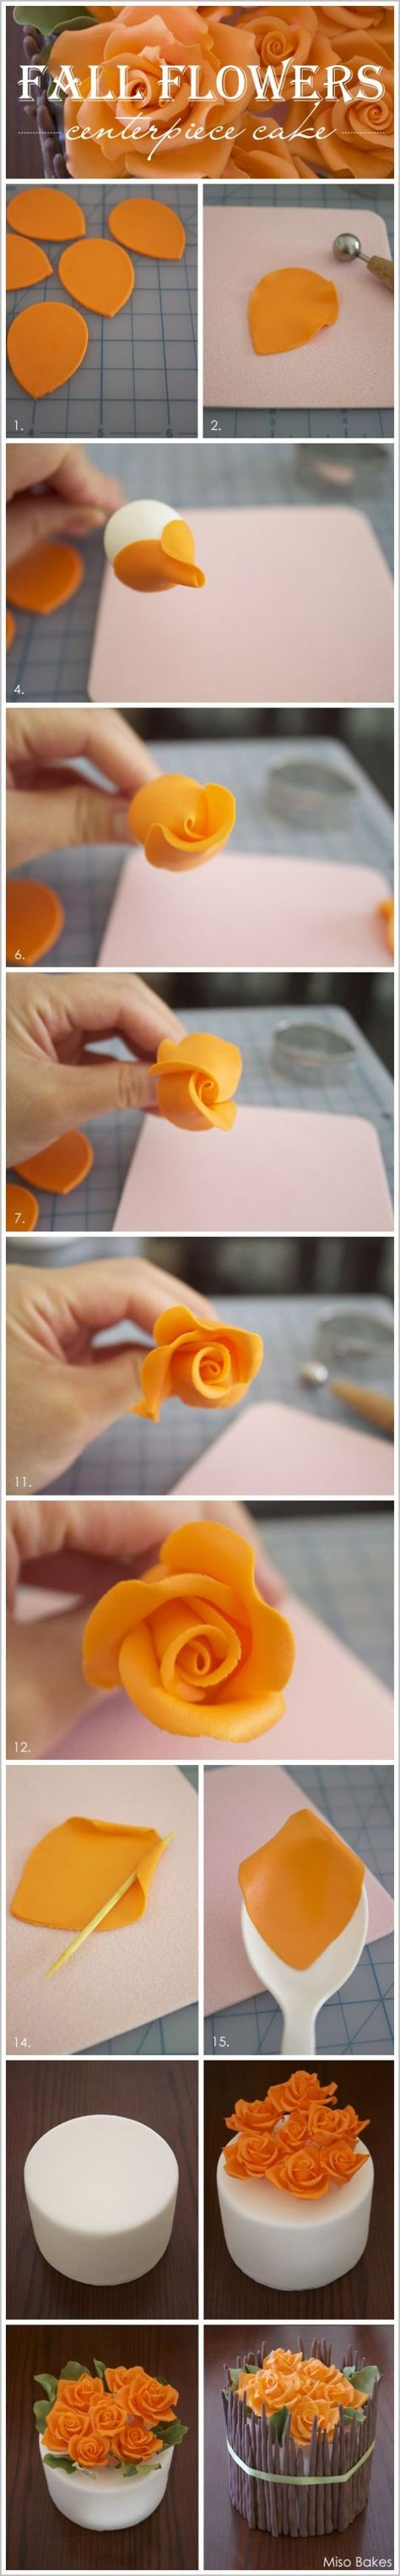 Air Dry Clay Tutorials: Easy Roses to Make with Clay